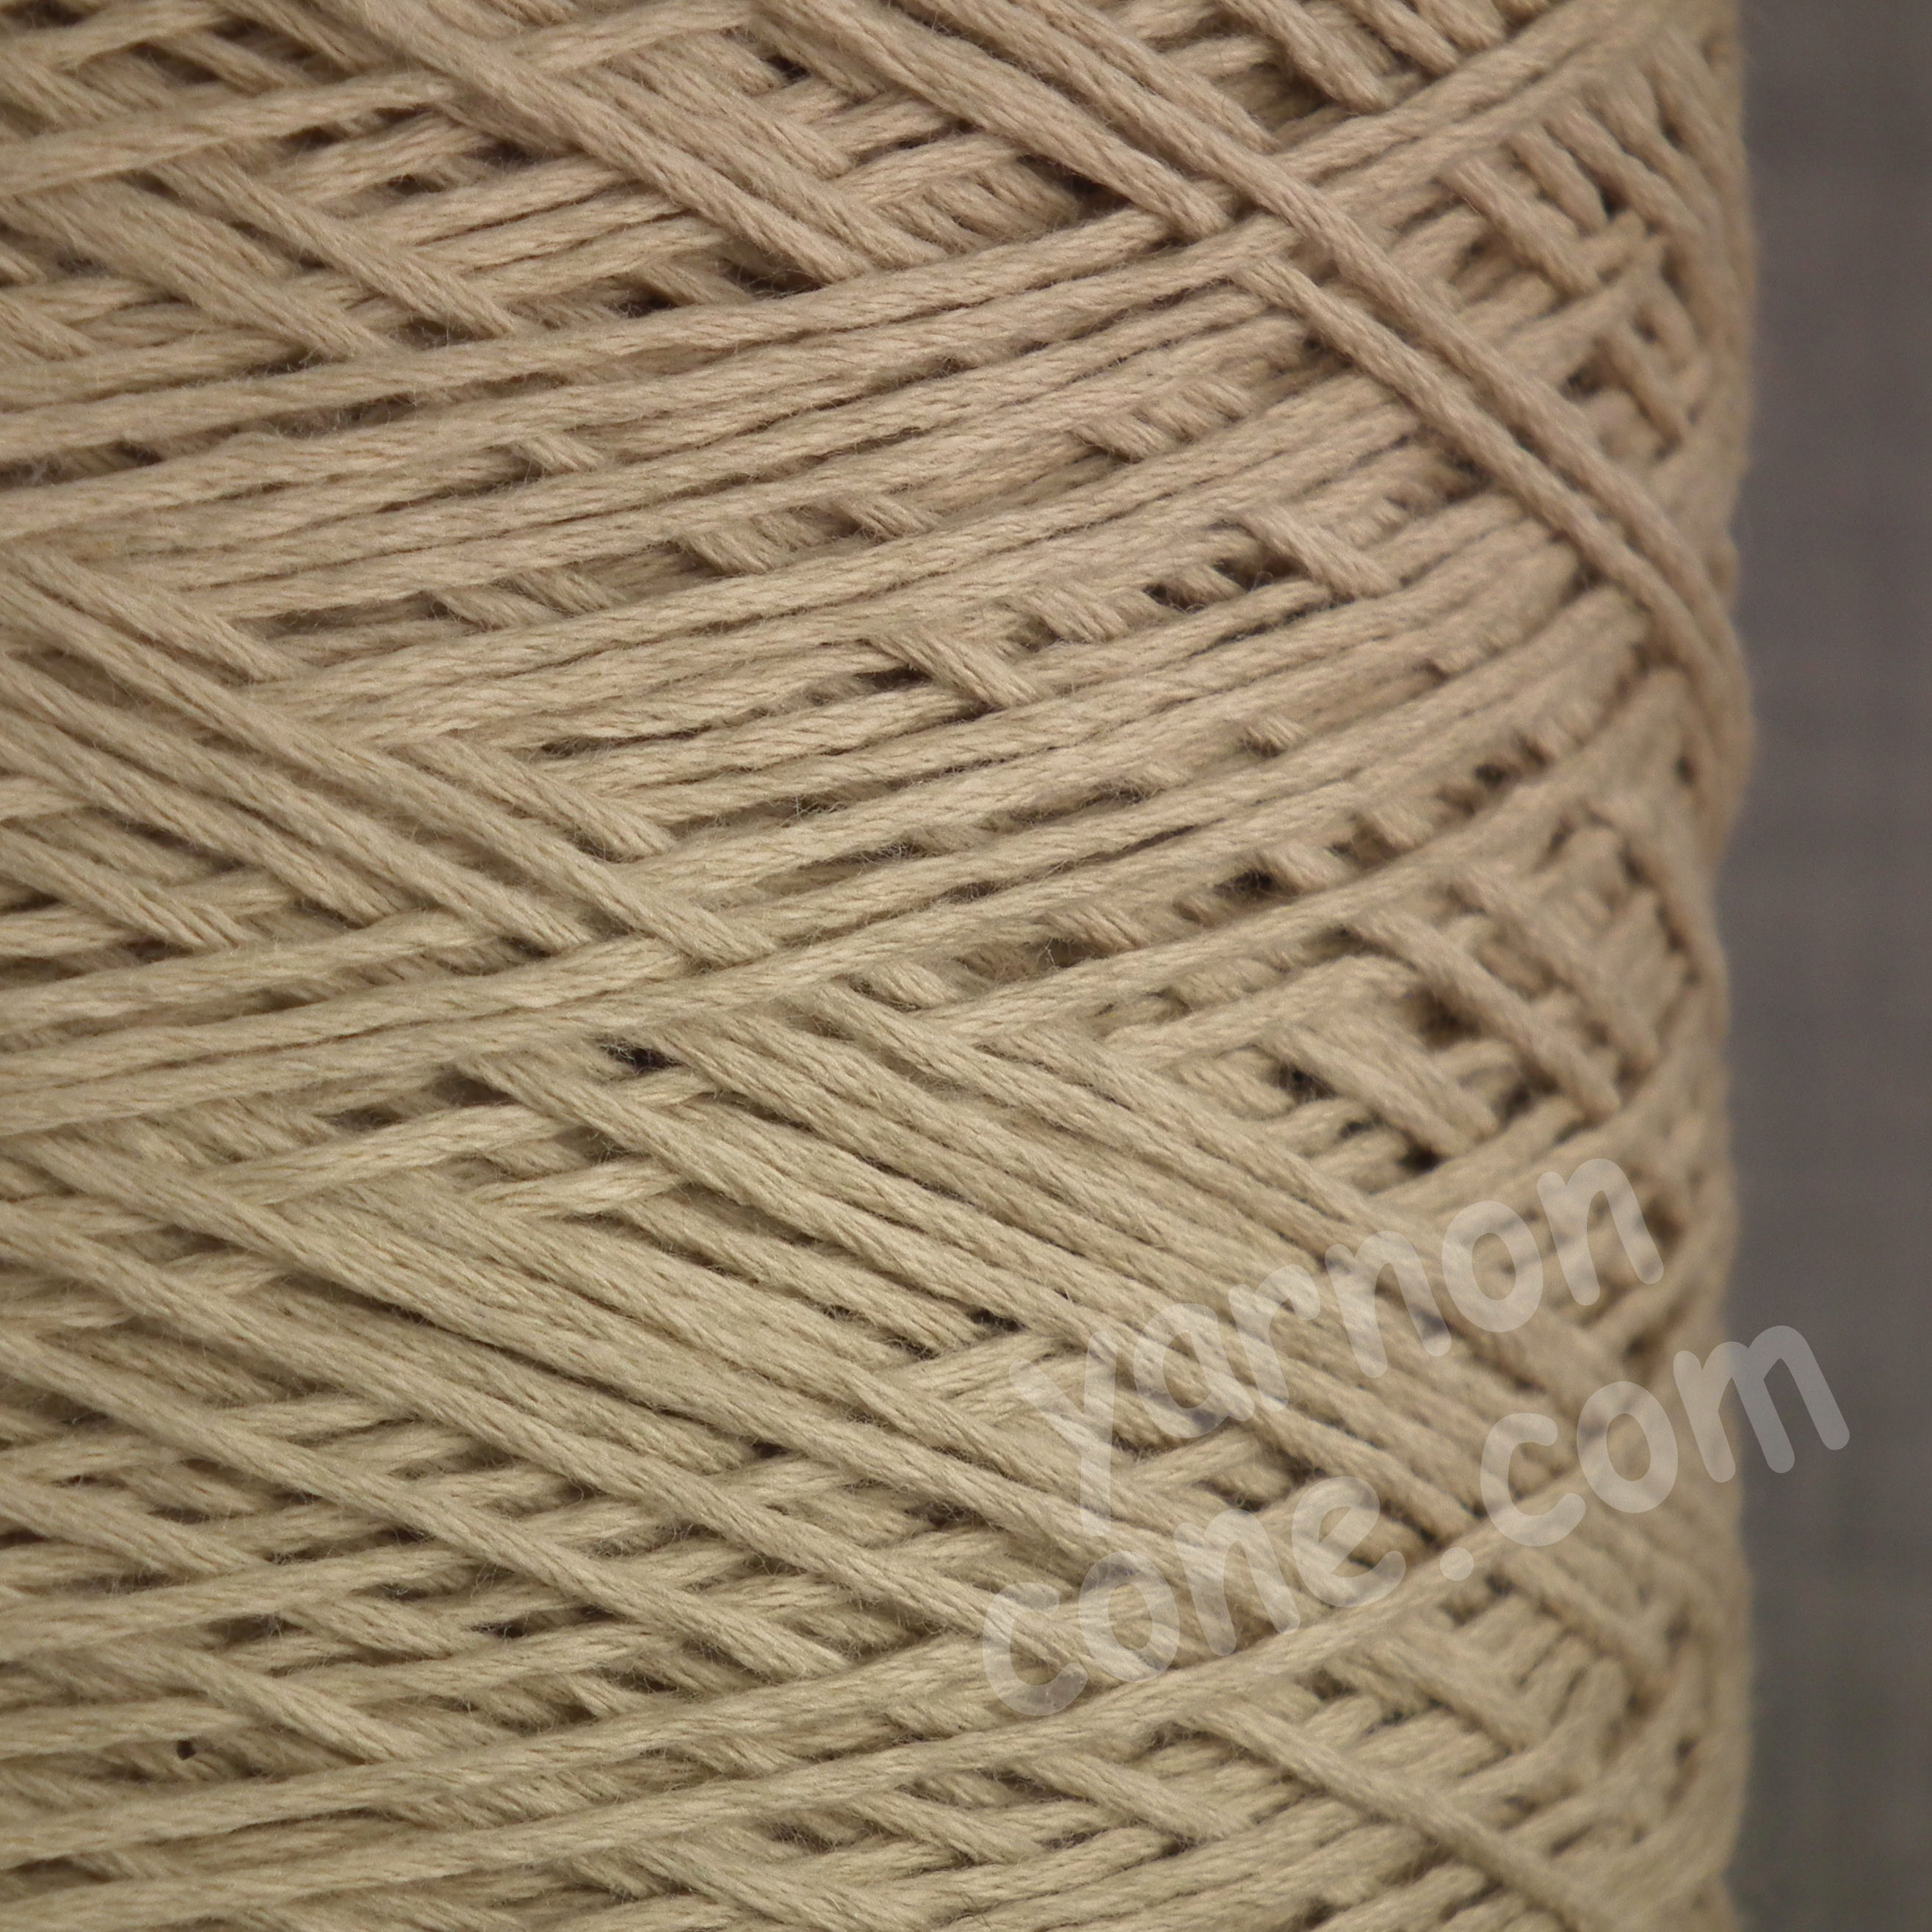 cashmere cotton soft yarn on cone 4 ply knitting weaving crochet luxury UK natural cream beige